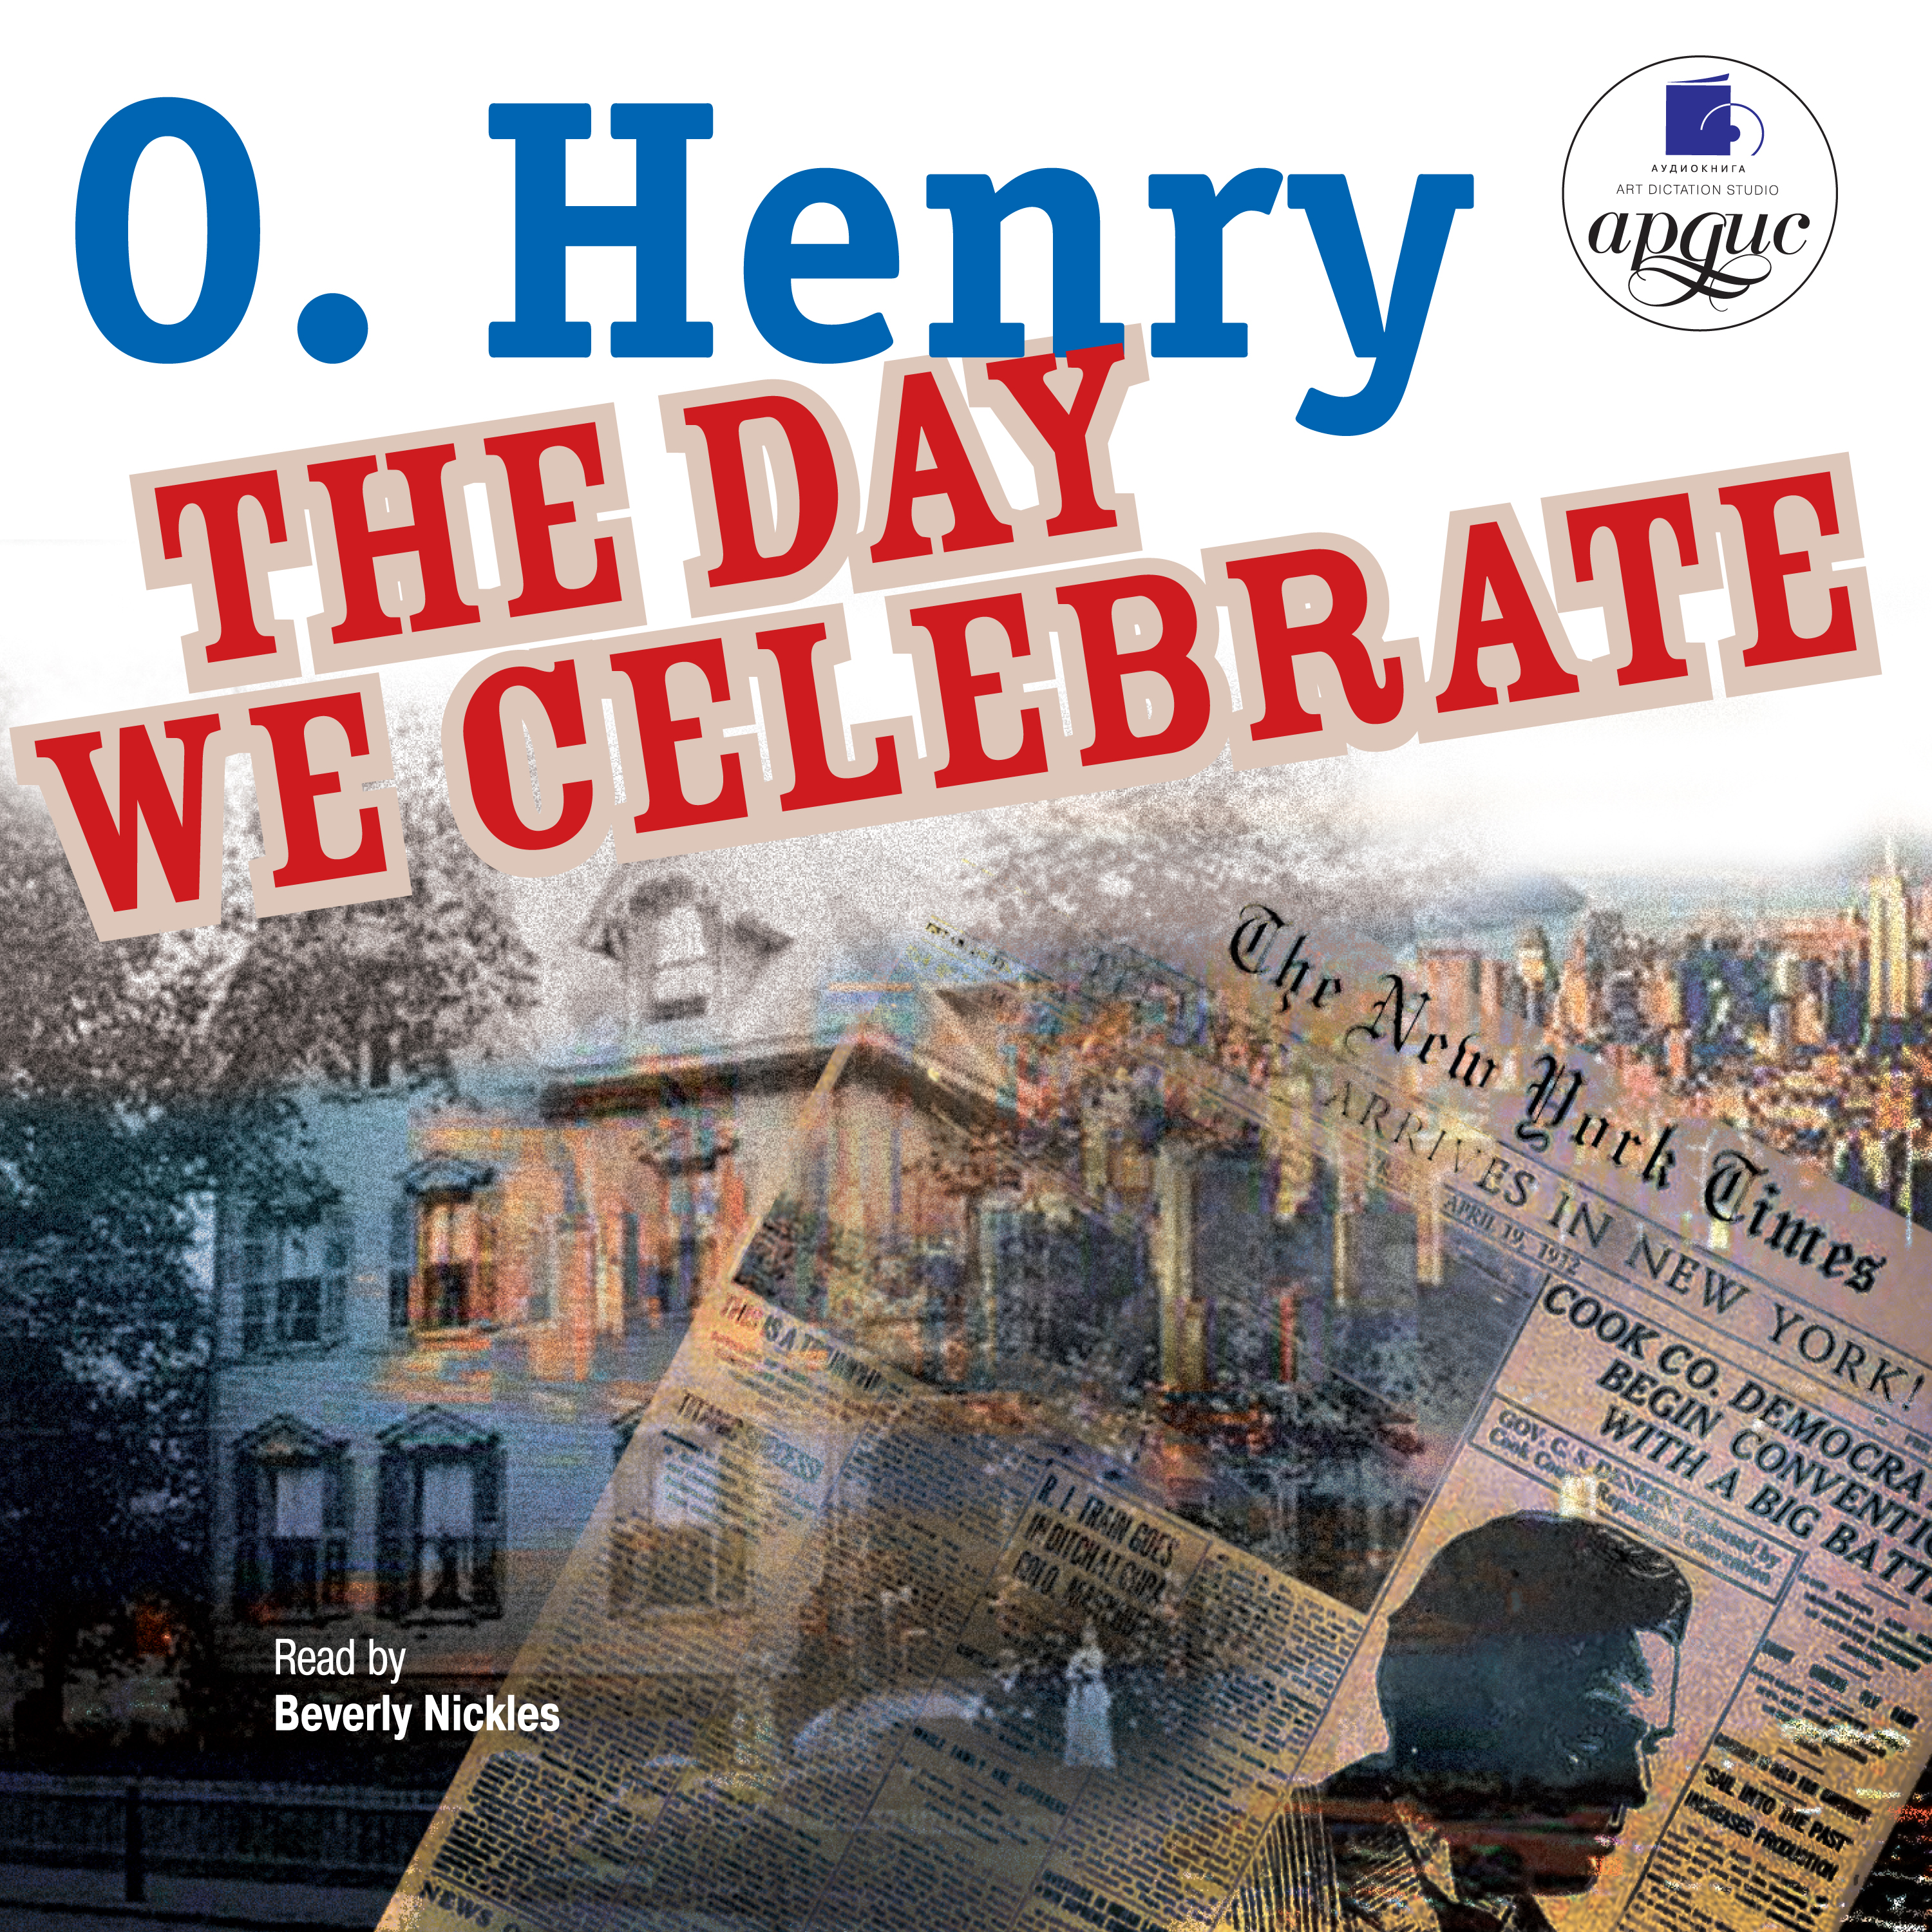 О. Генри The Day We Celebrate. Stories